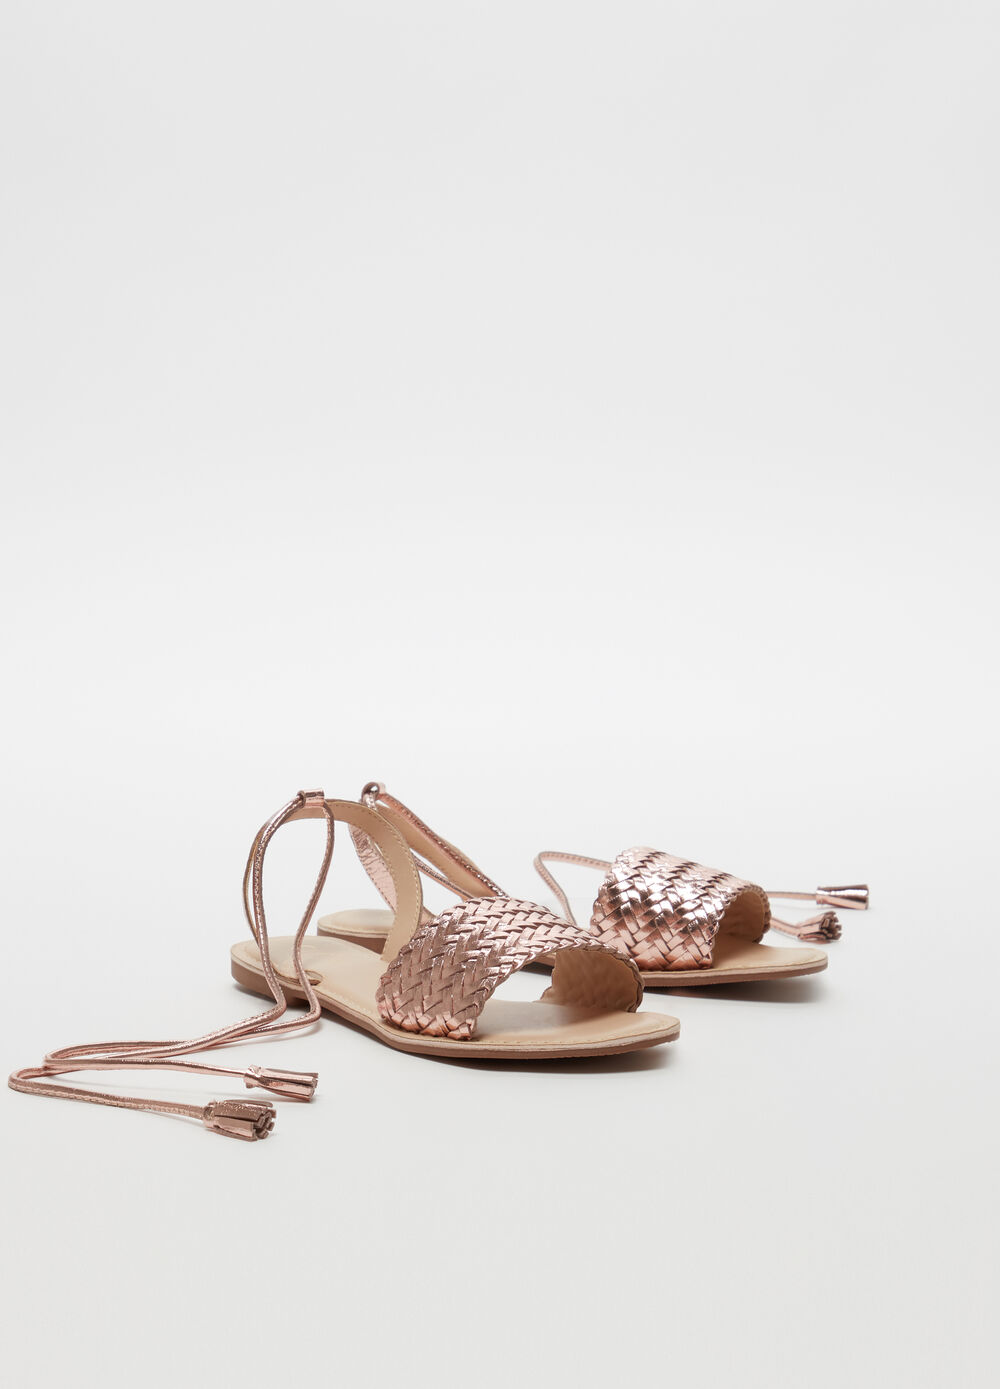 Gold-coloured metallic braided leather thong sandals with laces on the ankles